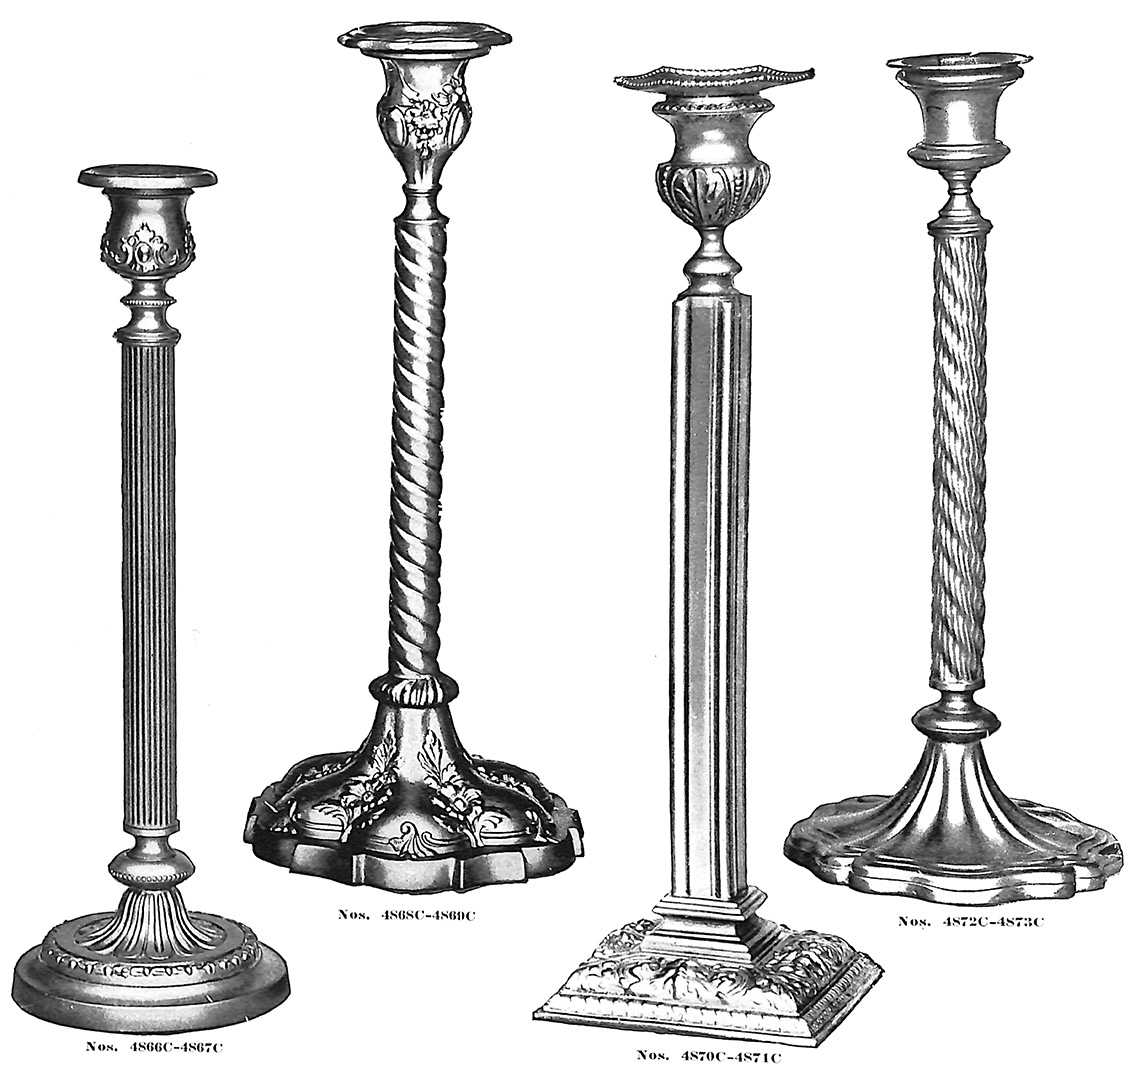 Candlesticks no. 4866C-4873C